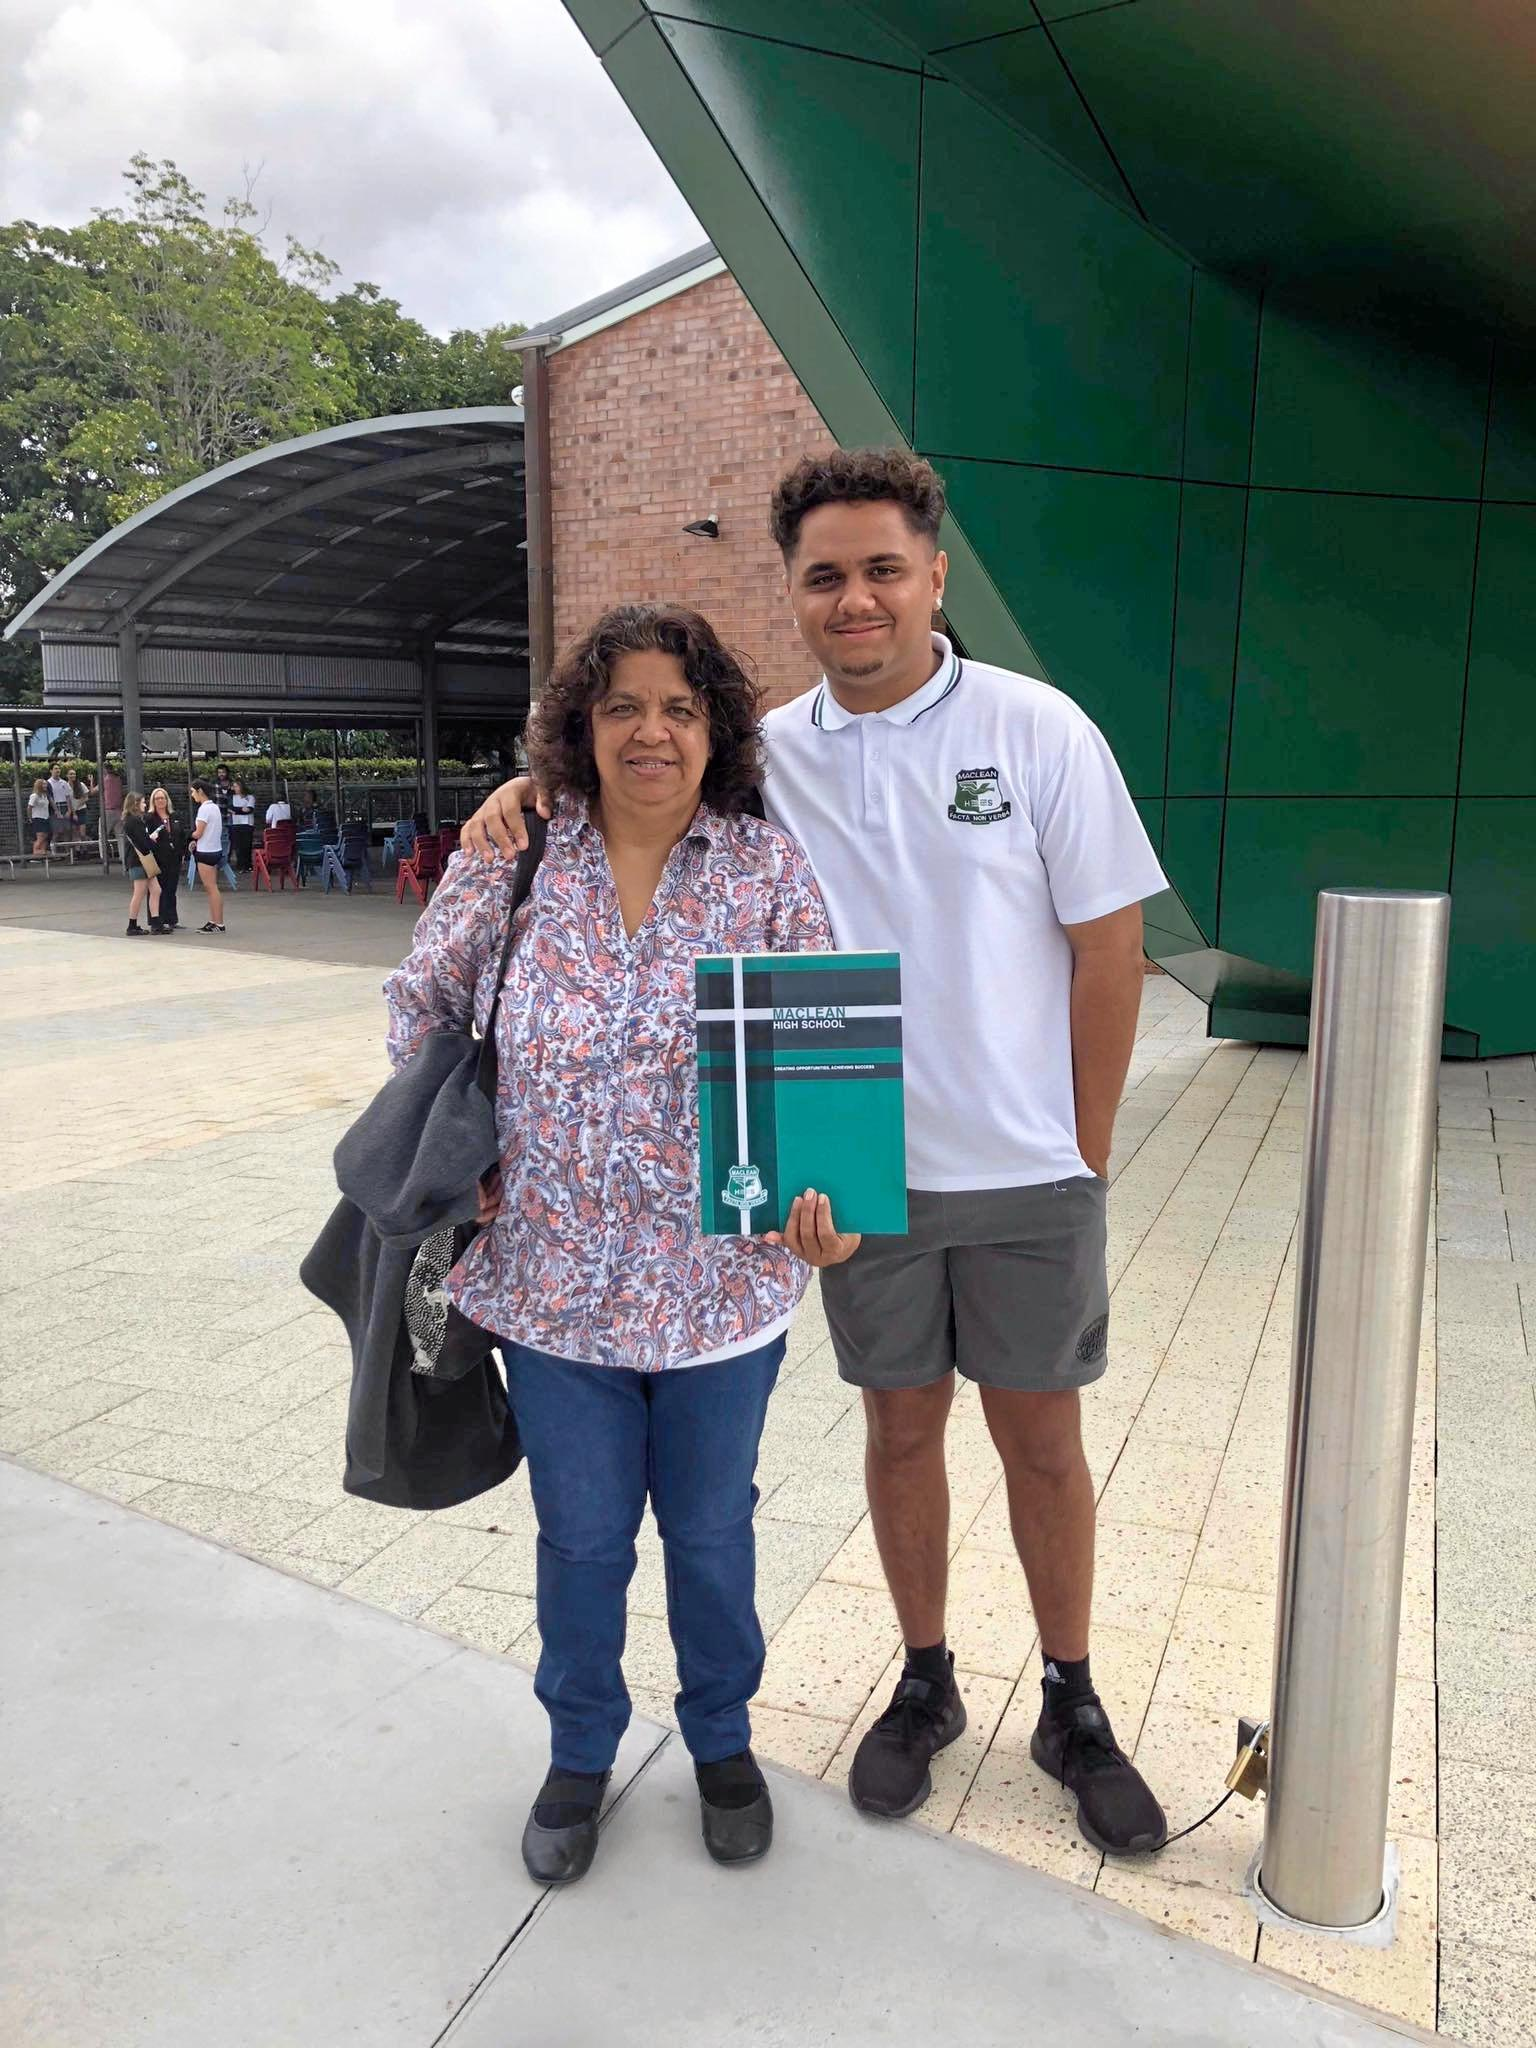 Bengallah Wright with his mum Lynette Randall celebrating his Year 12 graduation at Maclean High School.